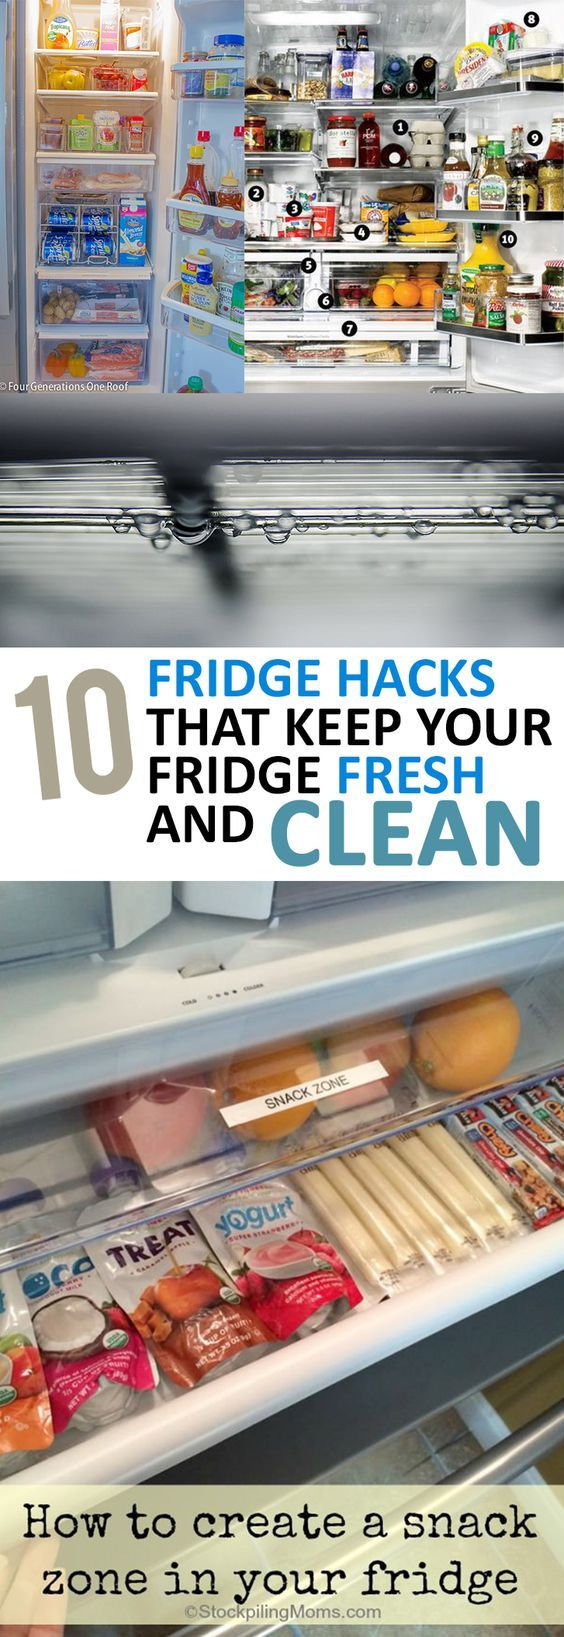 These 7 fridge hacks from the experts are THE BEST! I'm so glad I found these AMAZING TIPS! Now I'll have less messes to clean! Definitely pinning for later!